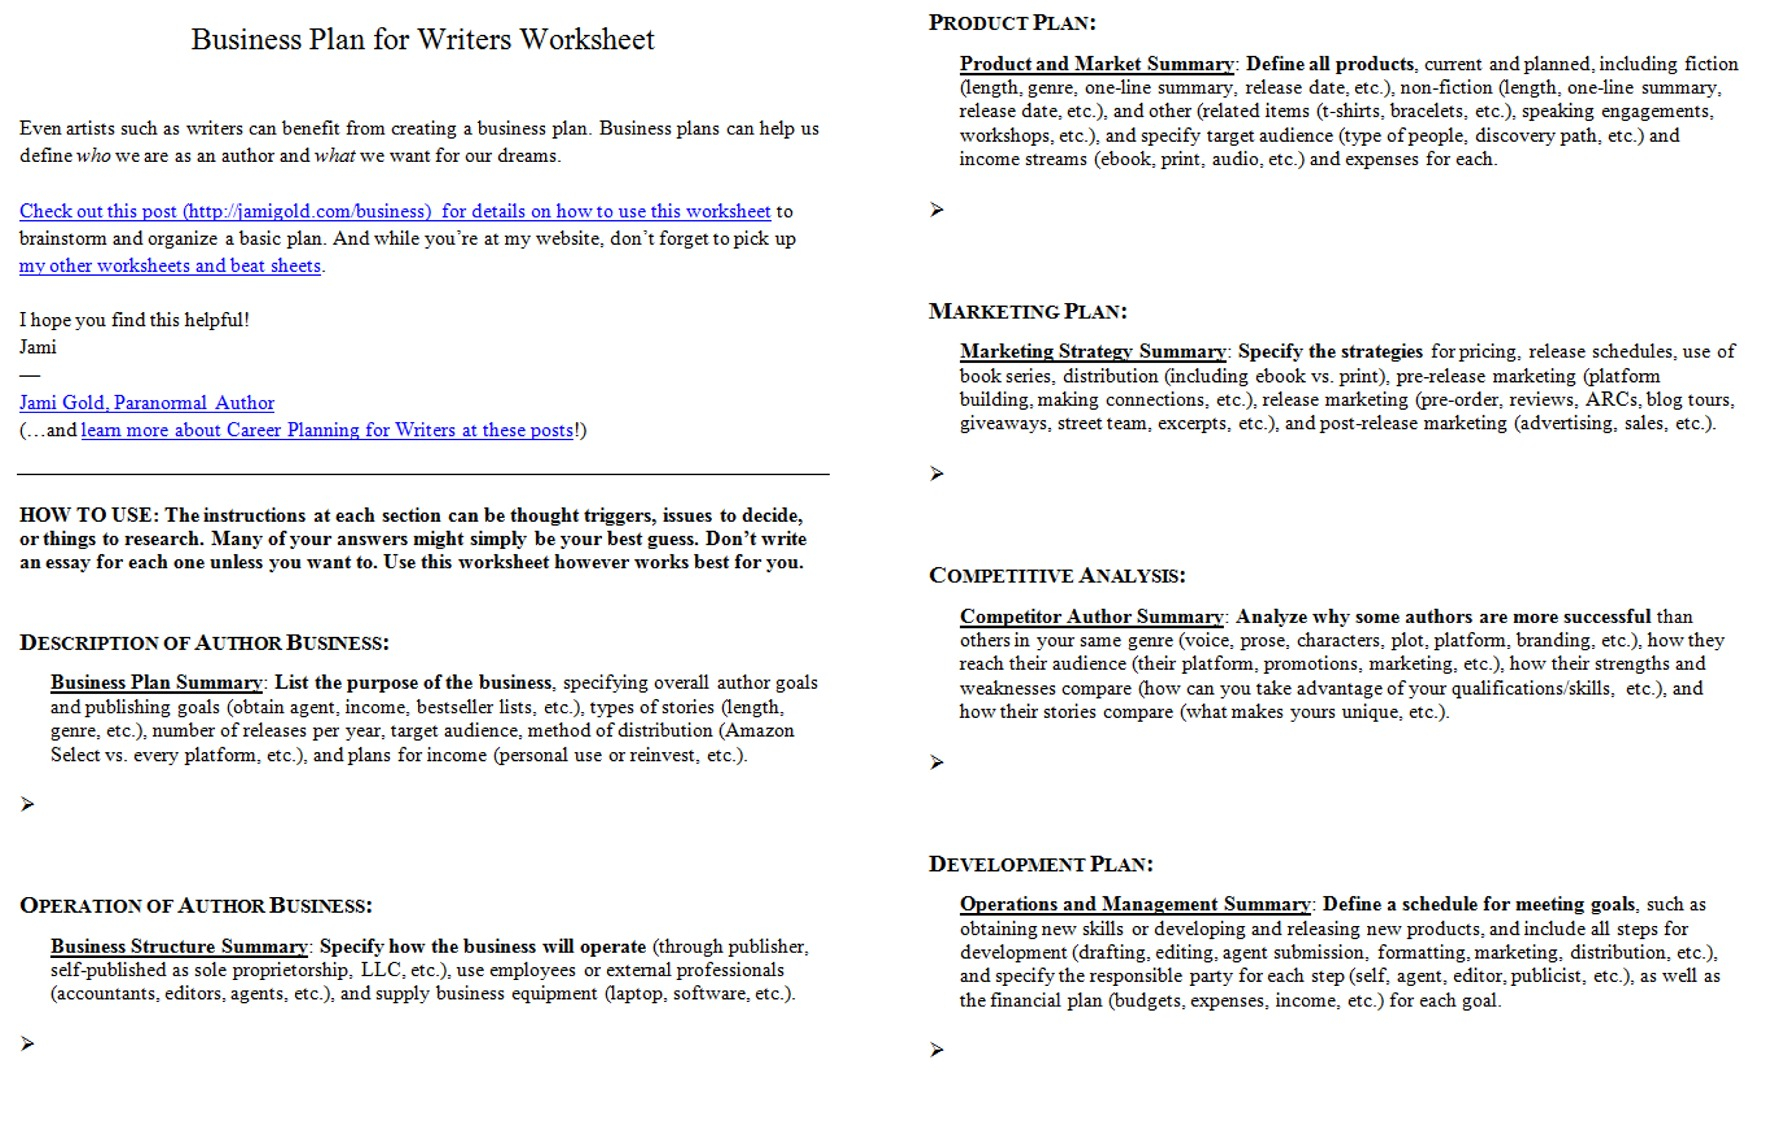 Proatmealus  Ravishing Worksheets For Writers  Jami Gold Paranormal Author With Entrancing Screen Shot Of Both Pages Of The Business Plan For Writers Worksheet With Agreeable Worksheet G Also Pre Algebra Multi Step Equations Worksheets In Addition Polynomial Expressions Worksheet And Ocean Worksheets For Preschool As Well As Properties Of Metals And Nonmetals Worksheet Answers Additionally Factoring Polynomials Worksheet Algebra  From Jamigoldcom With Proatmealus  Entrancing Worksheets For Writers  Jami Gold Paranormal Author With Agreeable Screen Shot Of Both Pages Of The Business Plan For Writers Worksheet And Ravishing Worksheet G Also Pre Algebra Multi Step Equations Worksheets In Addition Polynomial Expressions Worksheet From Jamigoldcom